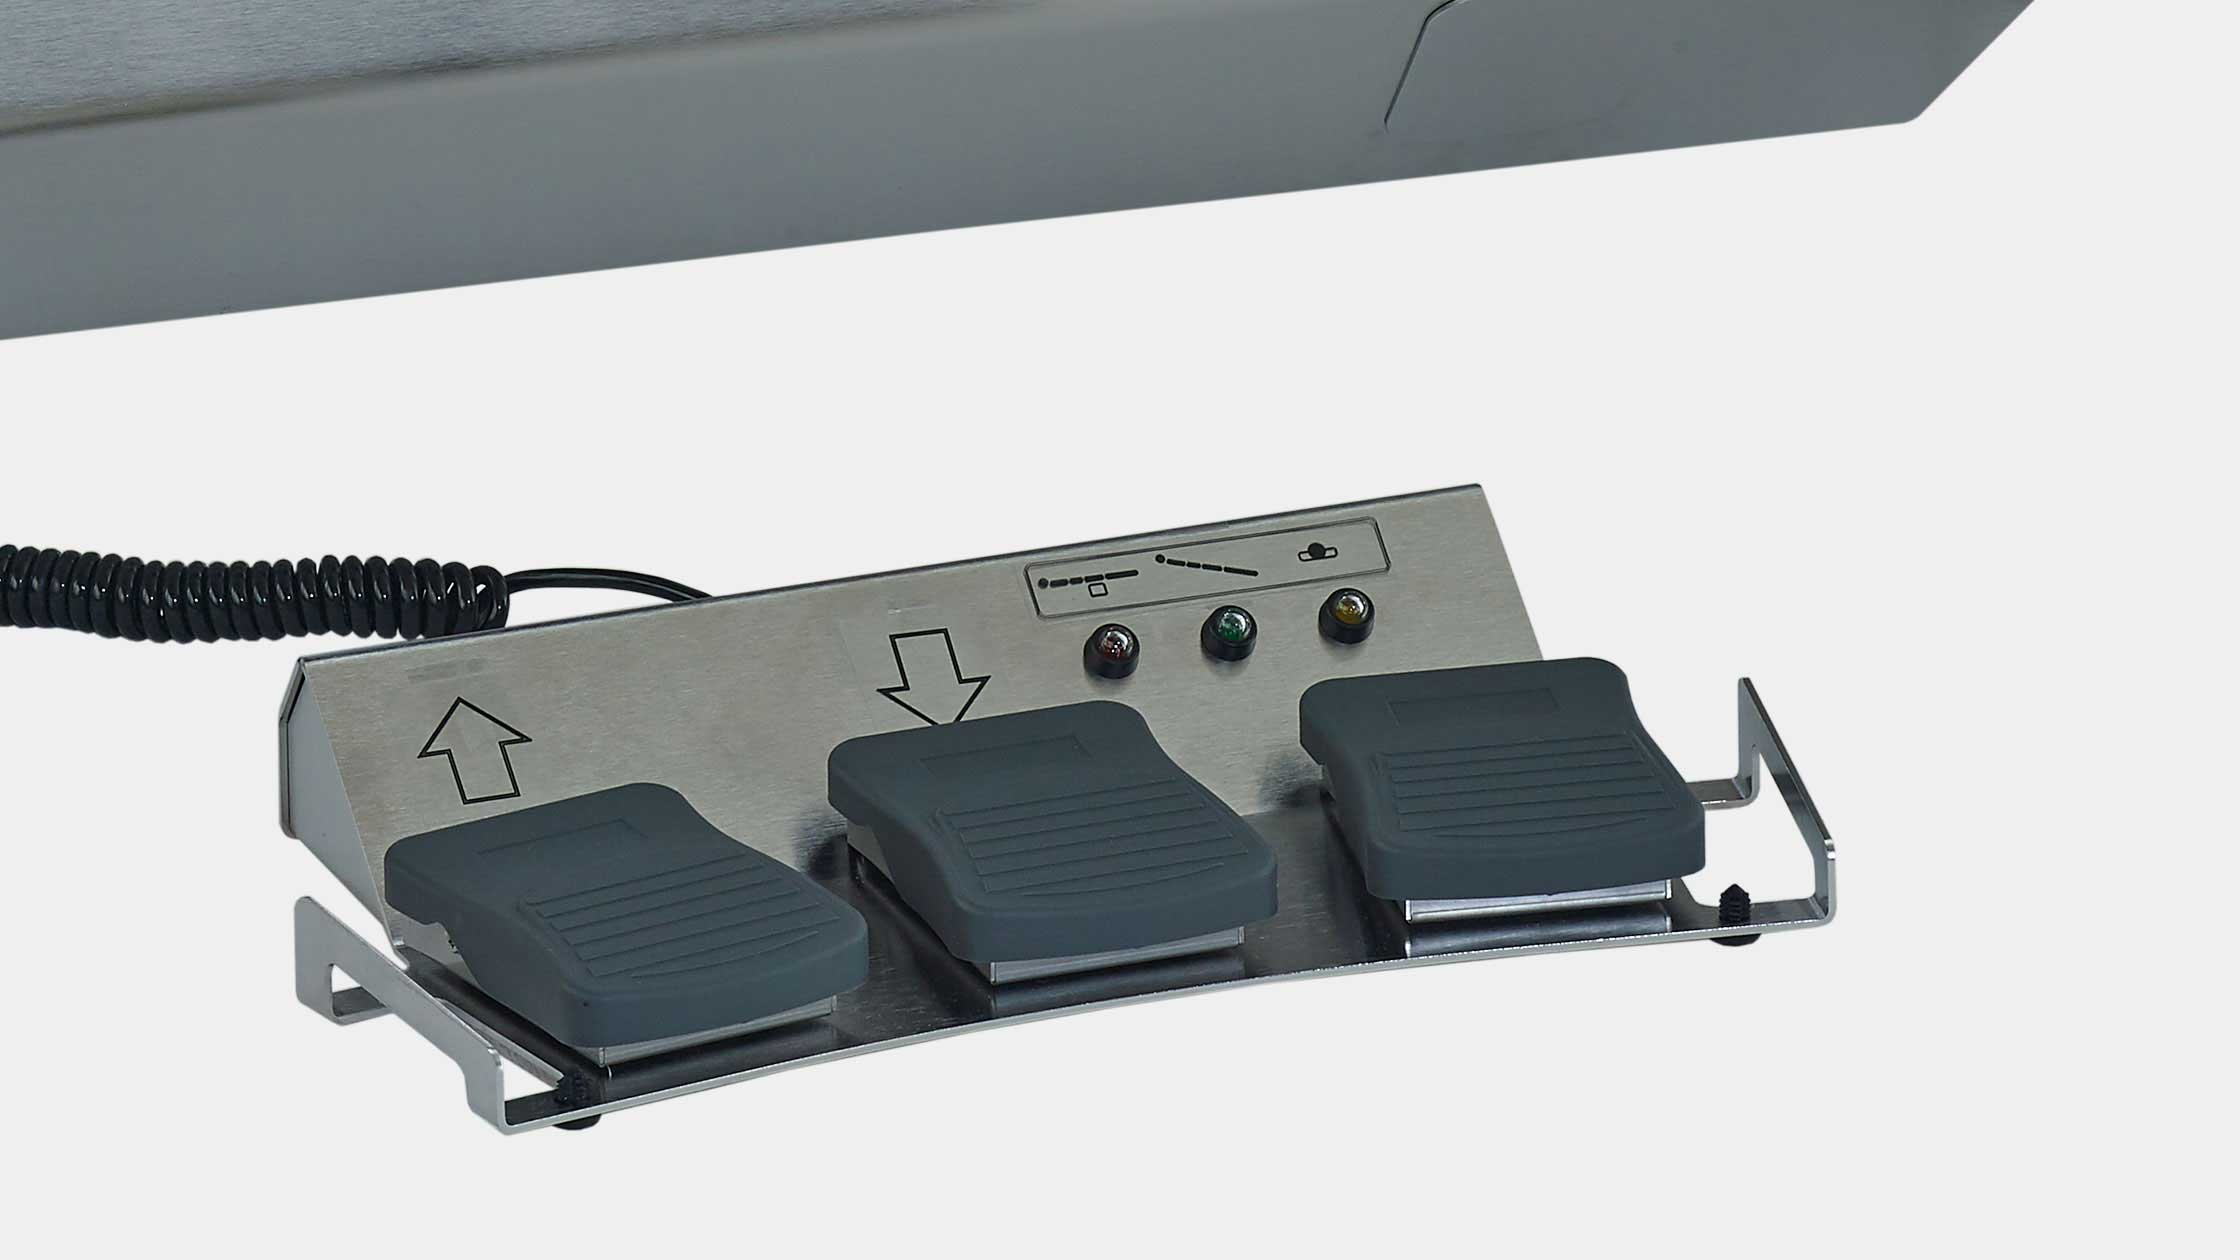 Foot switch for medifa 7000